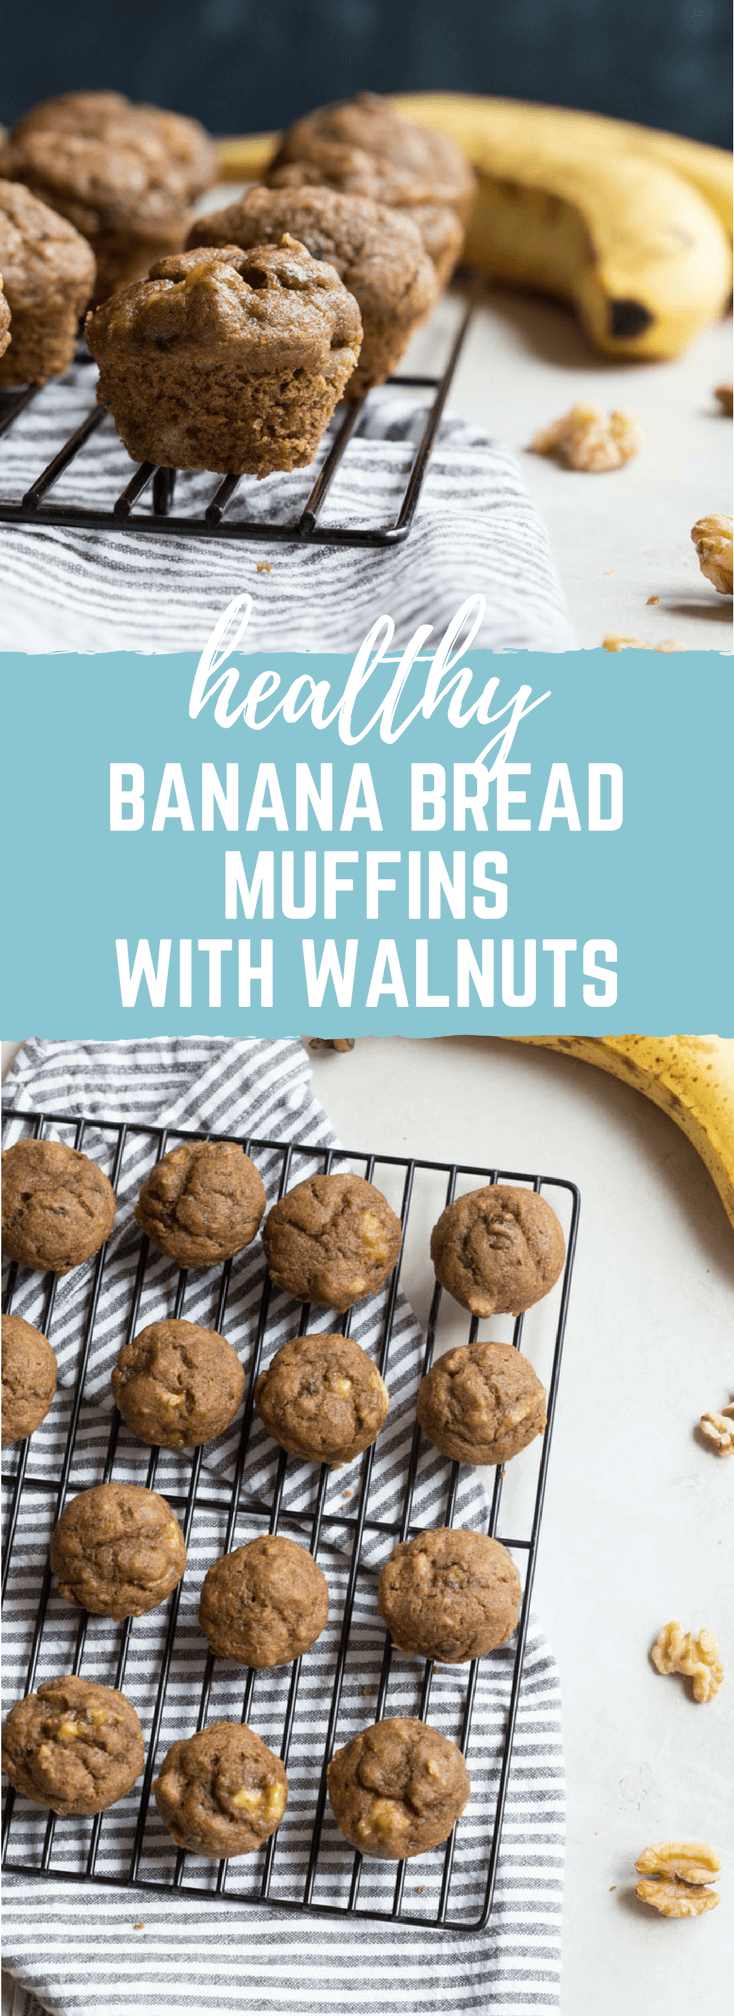 Healthy Banana Bread Muffins with Walnuts | less sugar and